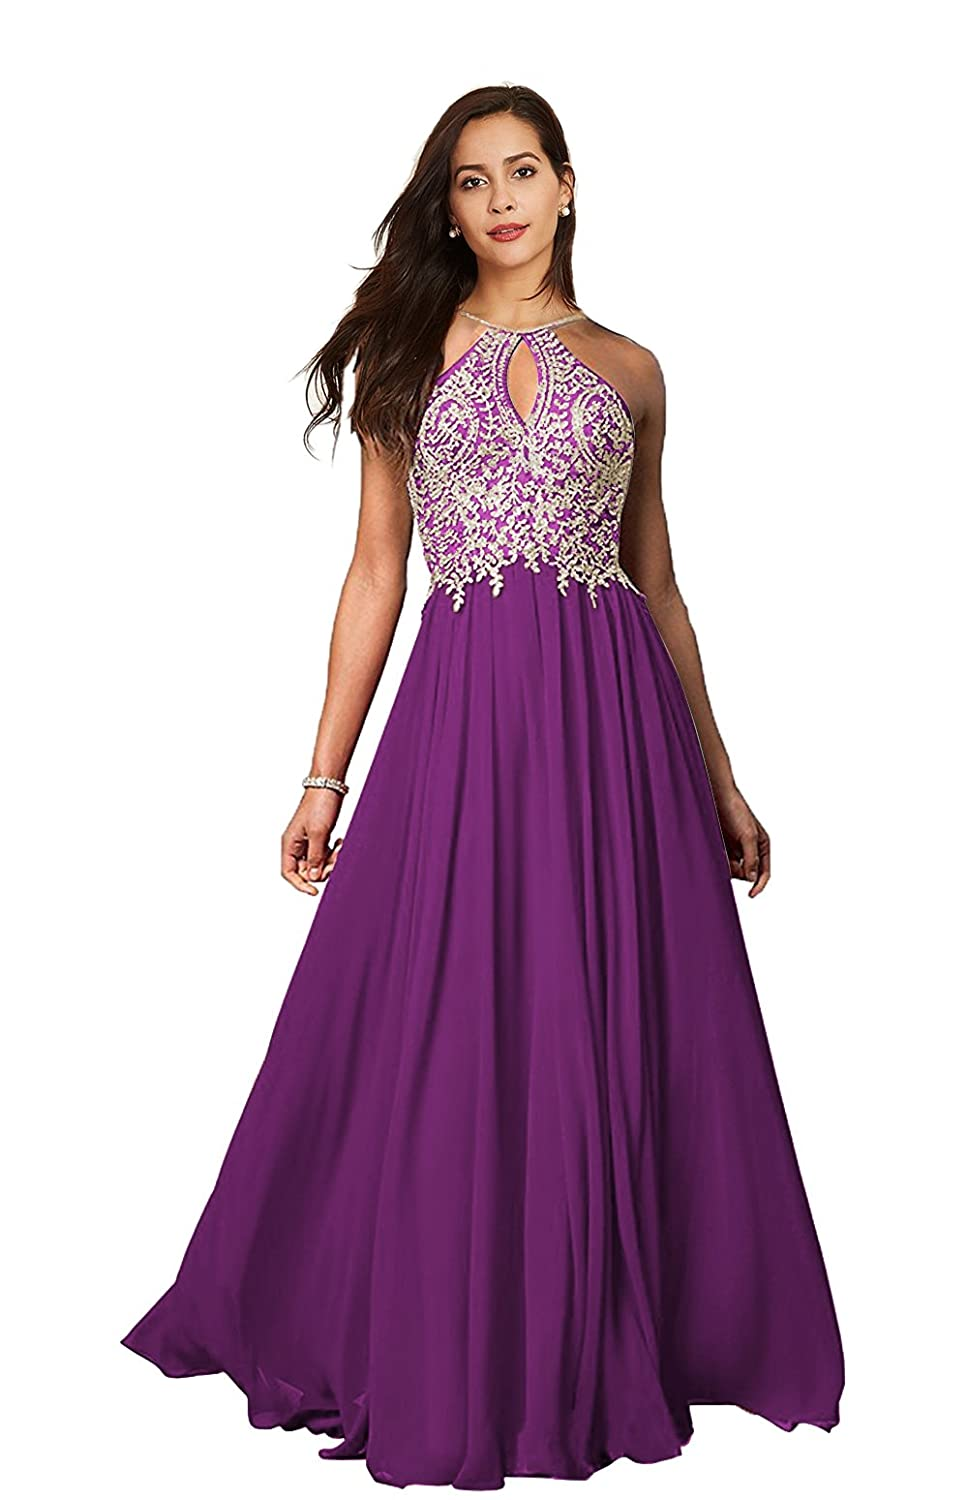 a5bcc56a1d9e Lily Wedding Womens Halter Gold Applique Prom Bridesmaid Dresses 2018 Long  Chiffon Evening Formal Gowns P199 at Amazon Women's Clothing store: